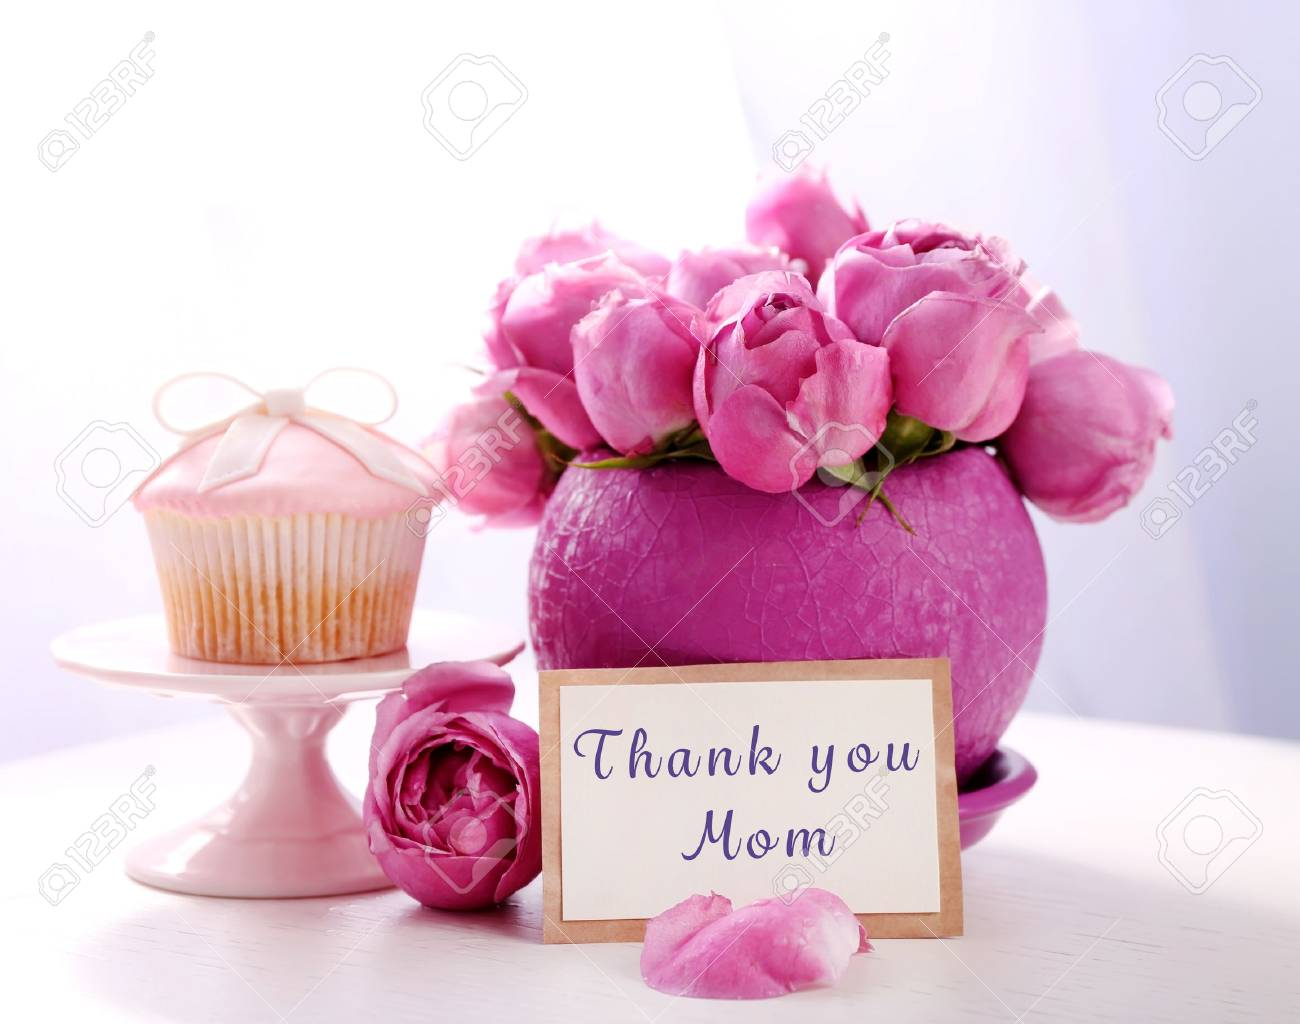 Happy Mothers Day Bouquet Of Roses Gift Card And Cake On Table Stock Photo Picture And Royalty Free Image Image 68275917